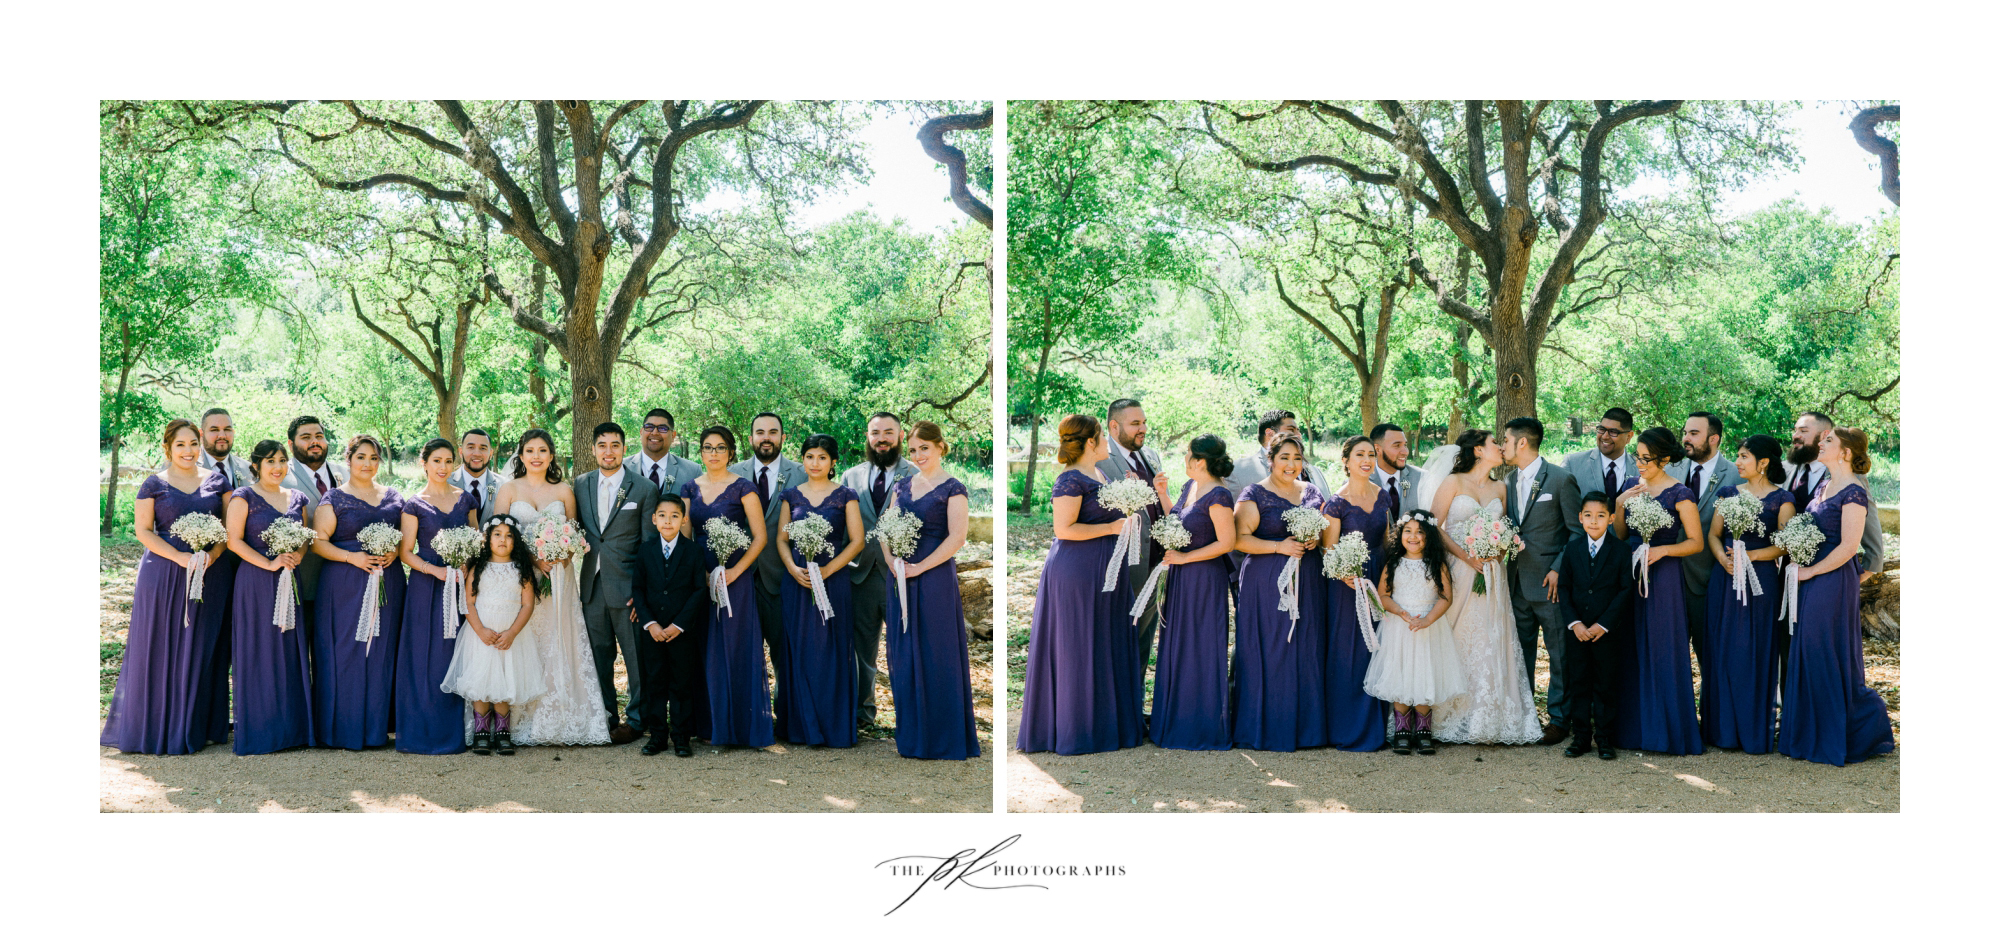 Bridal party at Magnolia Halle in San Antonio, Texas - Photographed by The PK Photographs